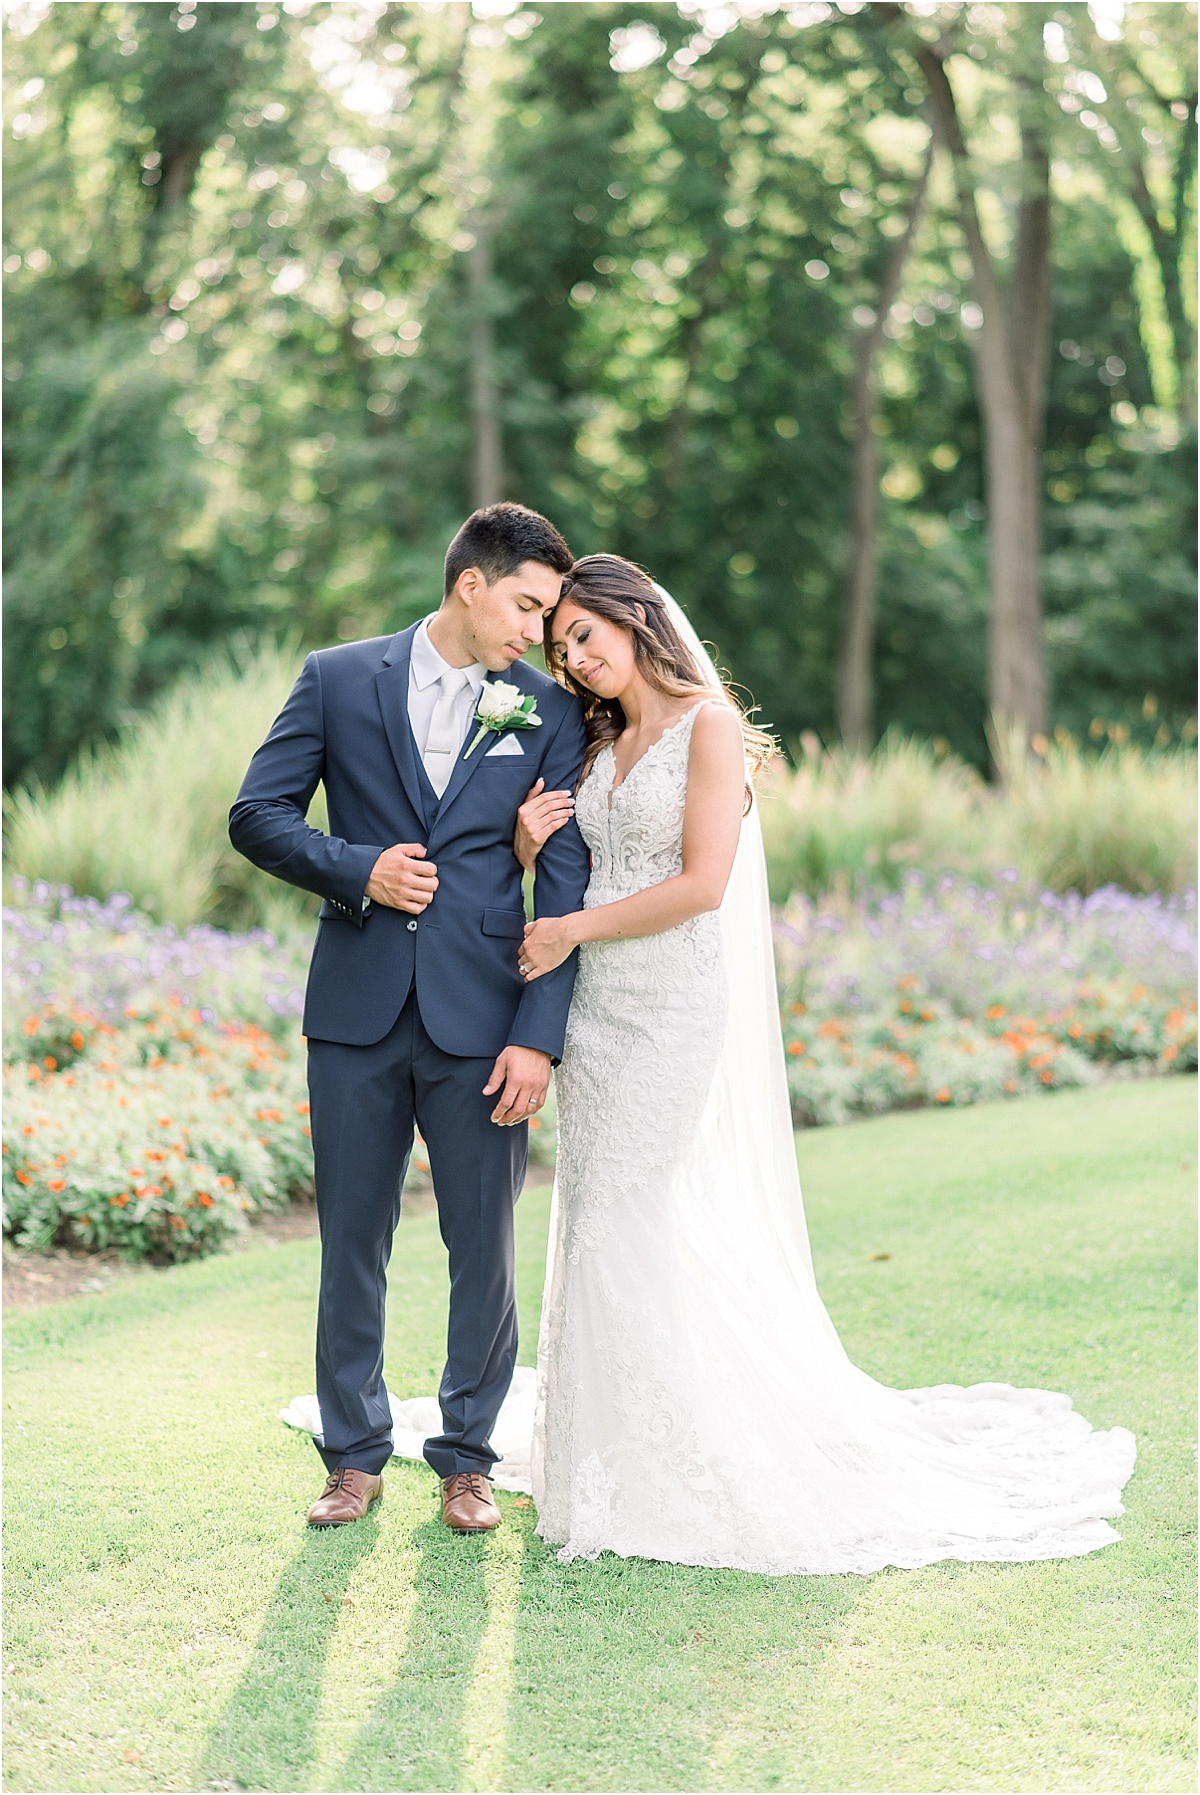 Tuscany Falls Wedding + Light and Airy Wedding Photographer Chicago, Mokena Wedding Photographer + Chicago Latino Photography + Naperville Wedding Photographer + Chicago Engagement Photographer + Best Photographer In Chicago_0051.jpg